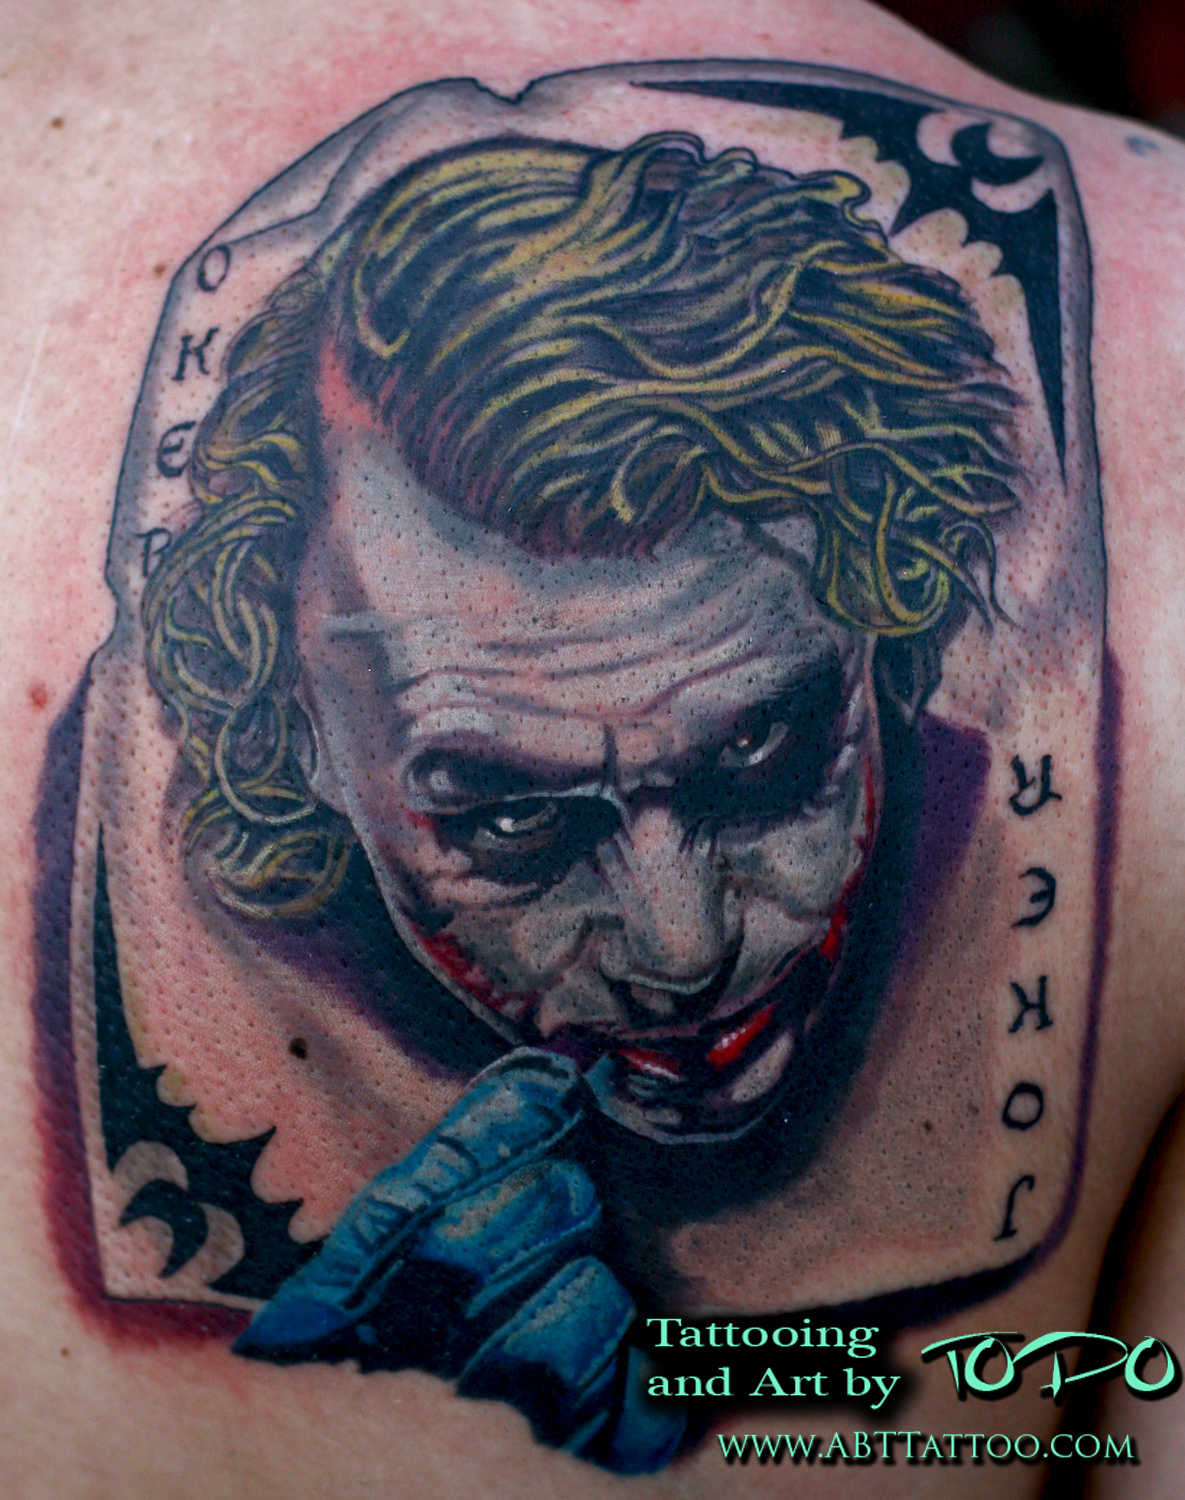 Tattoos Realistic Tattoo